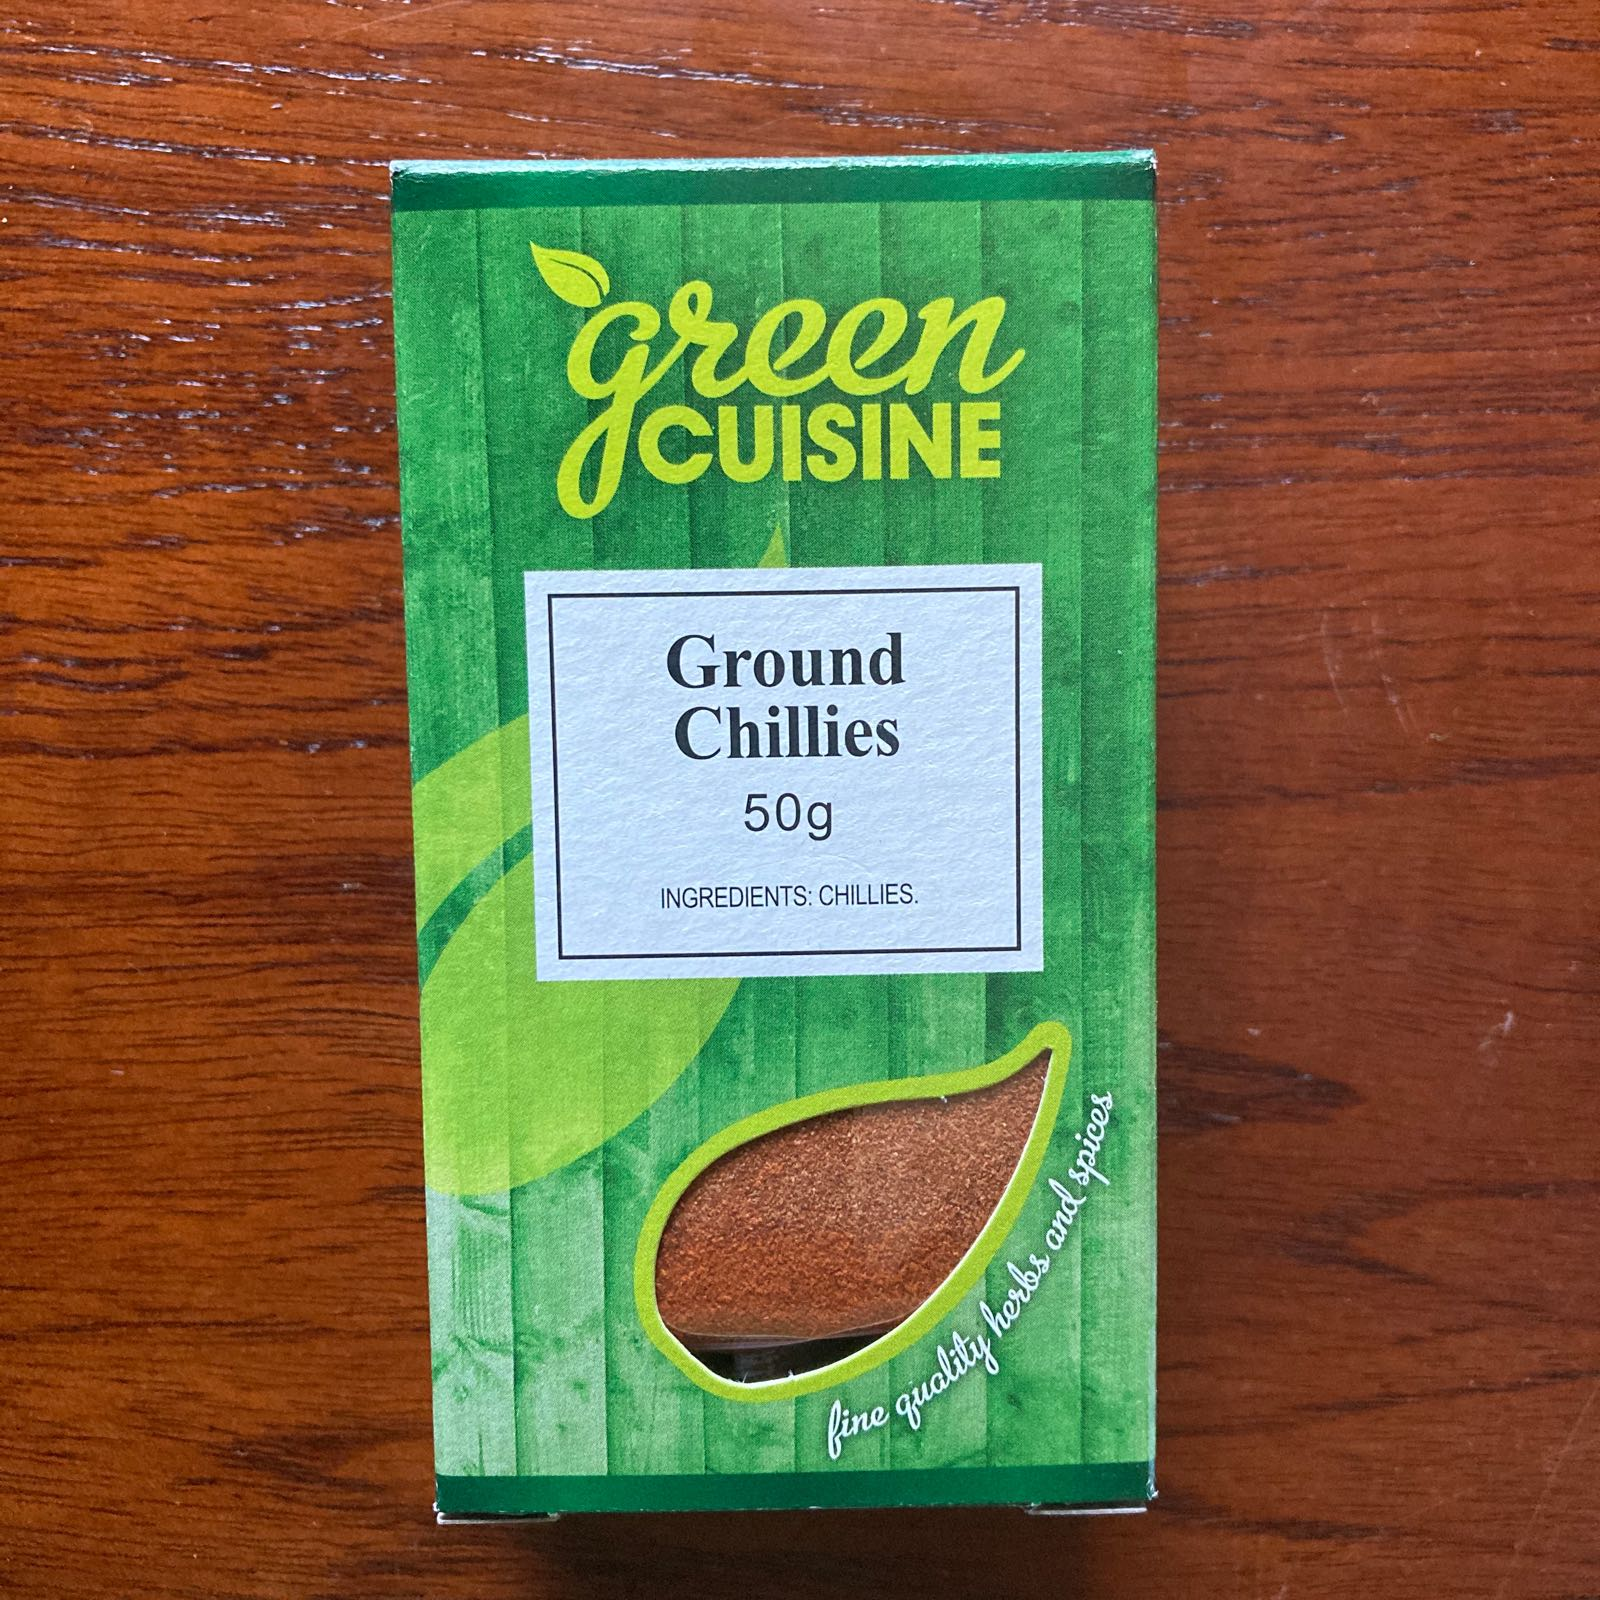 Ground Chillies